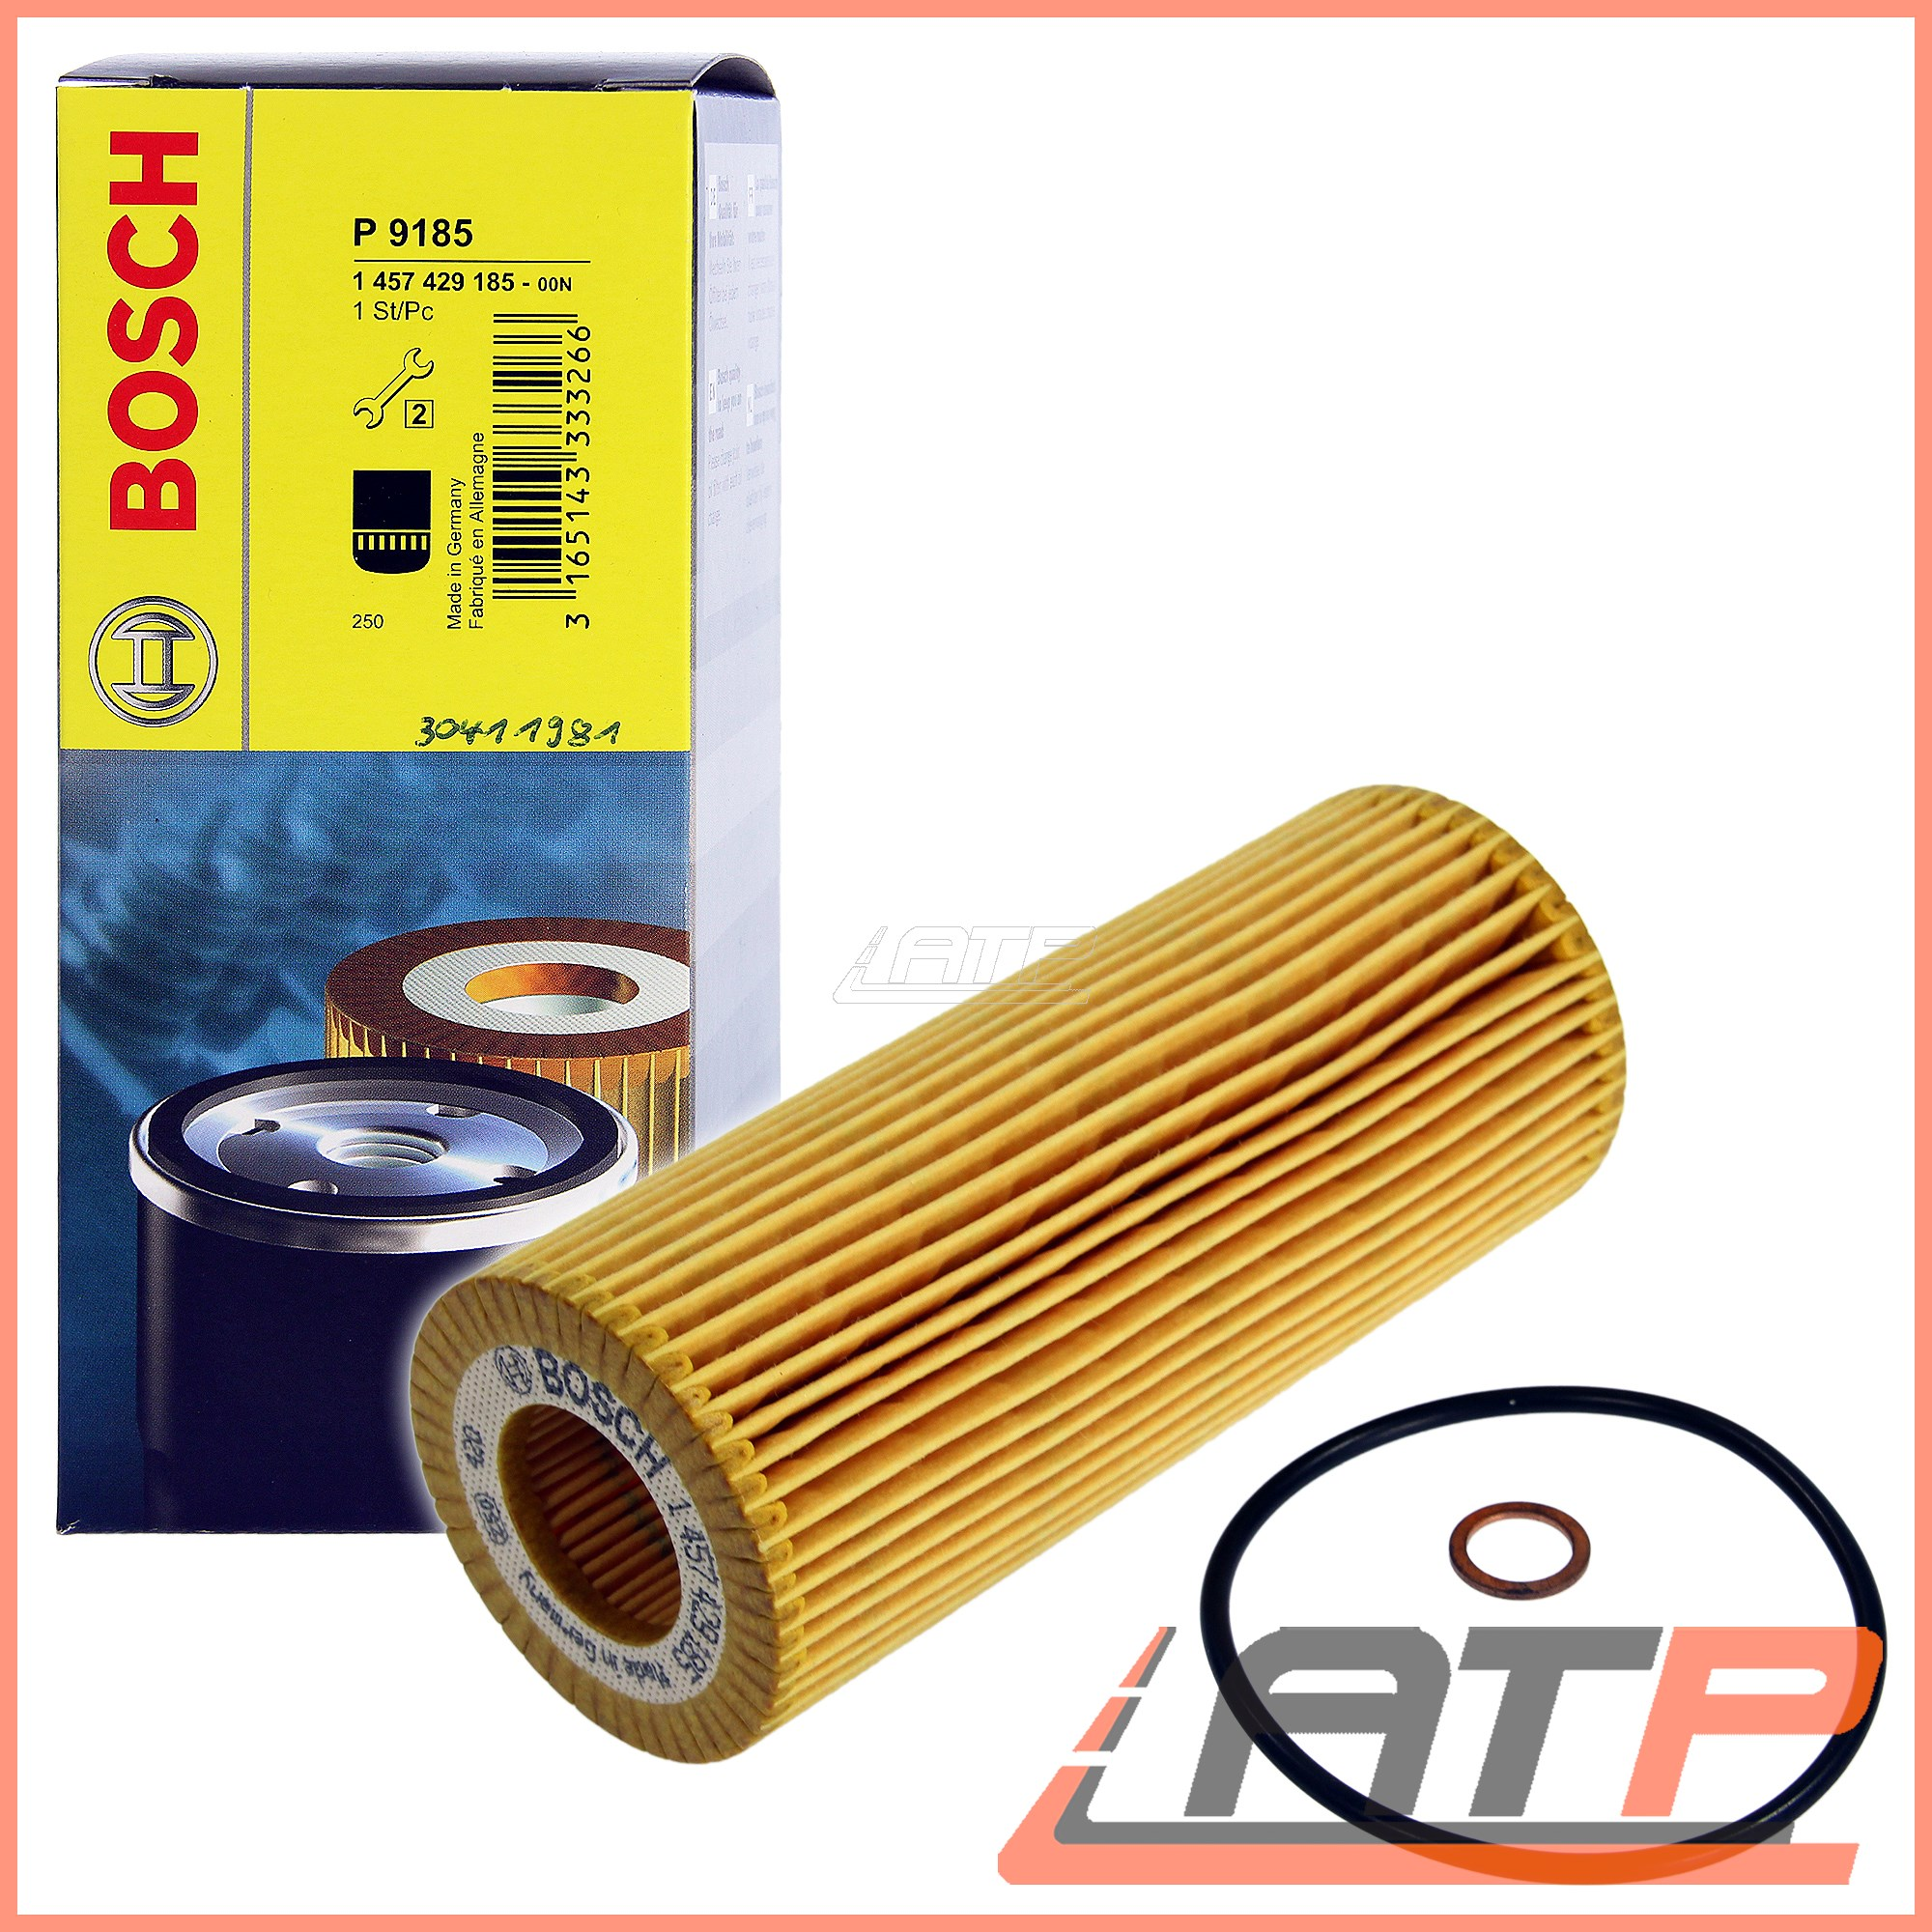 BOSCH-OIL-FILTER-6L-CASTROL-EDGE-FST-5W-30-C3-BMW-3-SERIES-E46-318d-320d-01-06 thumbnail 2